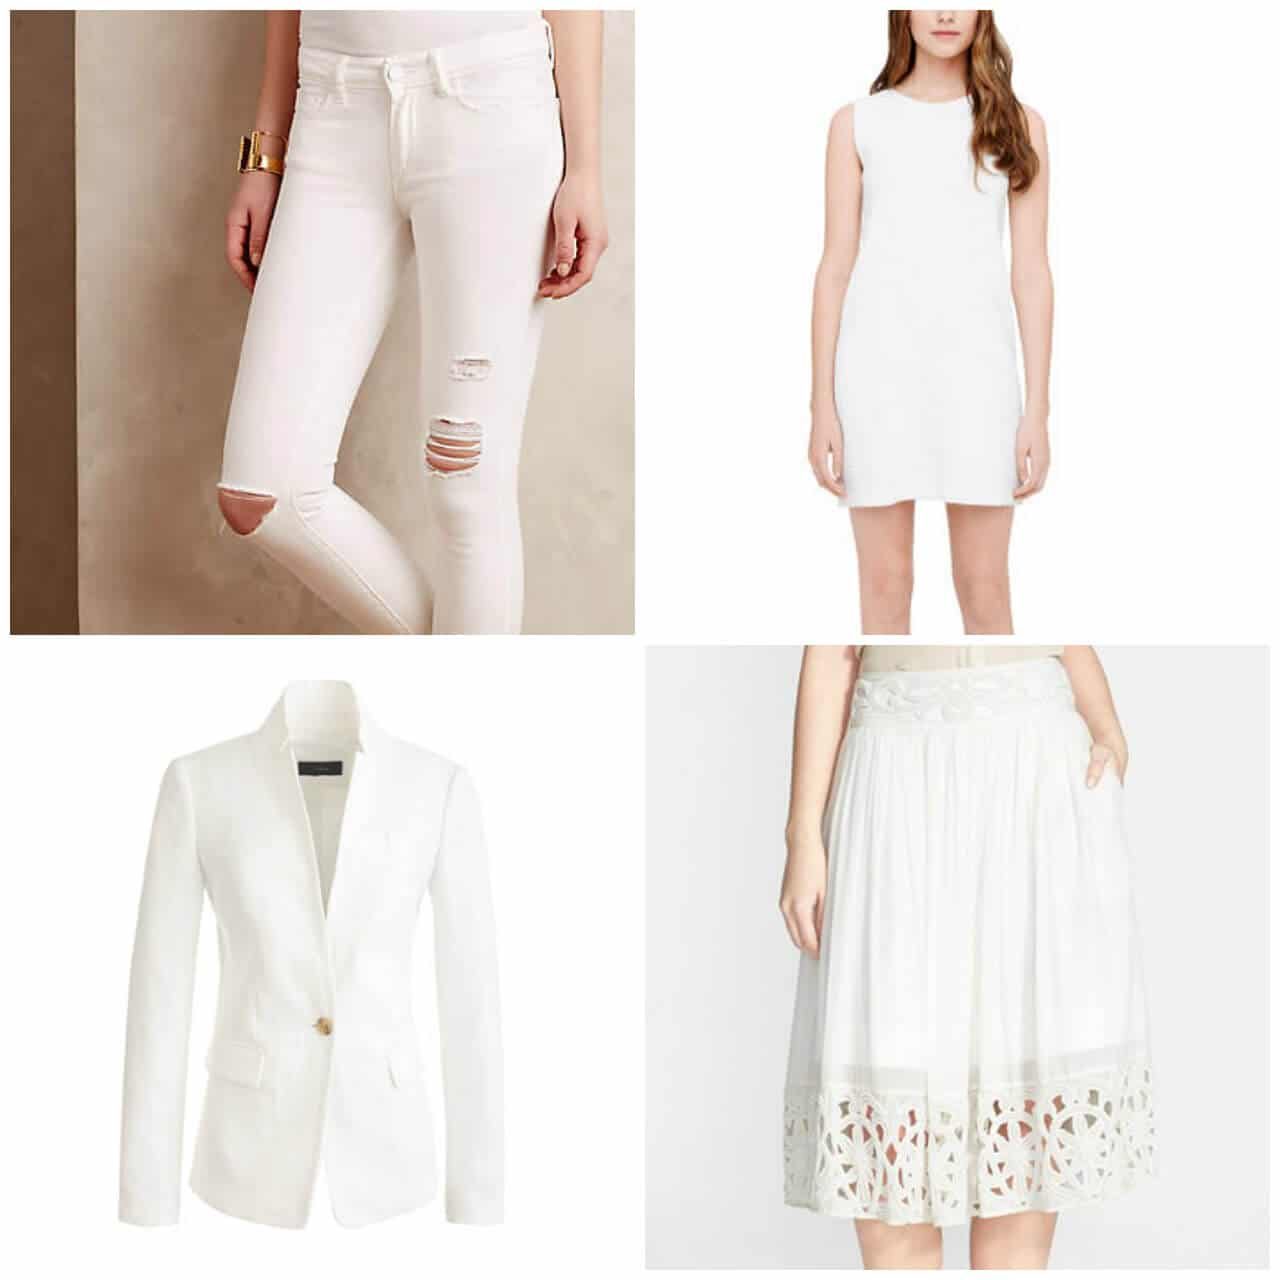 White Labor Day Sales Styling Suggestions